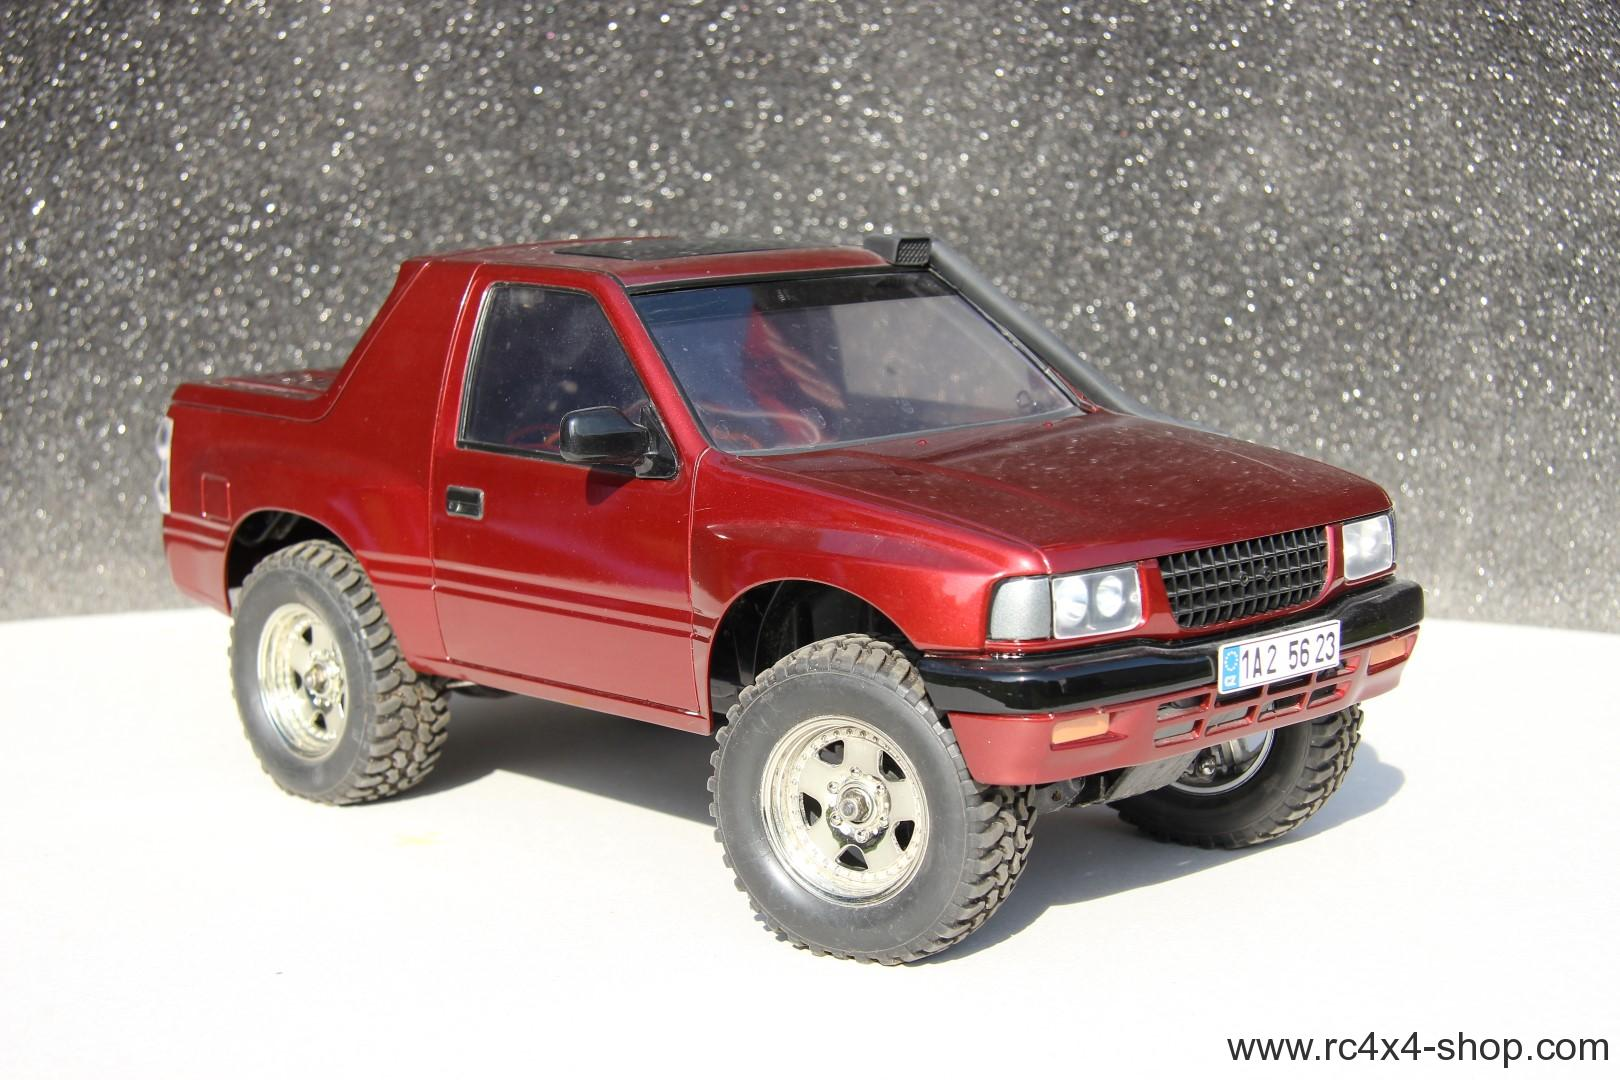 Car Body Kits >> Offroad Car KITs | CC-01 Isuzu Amigo